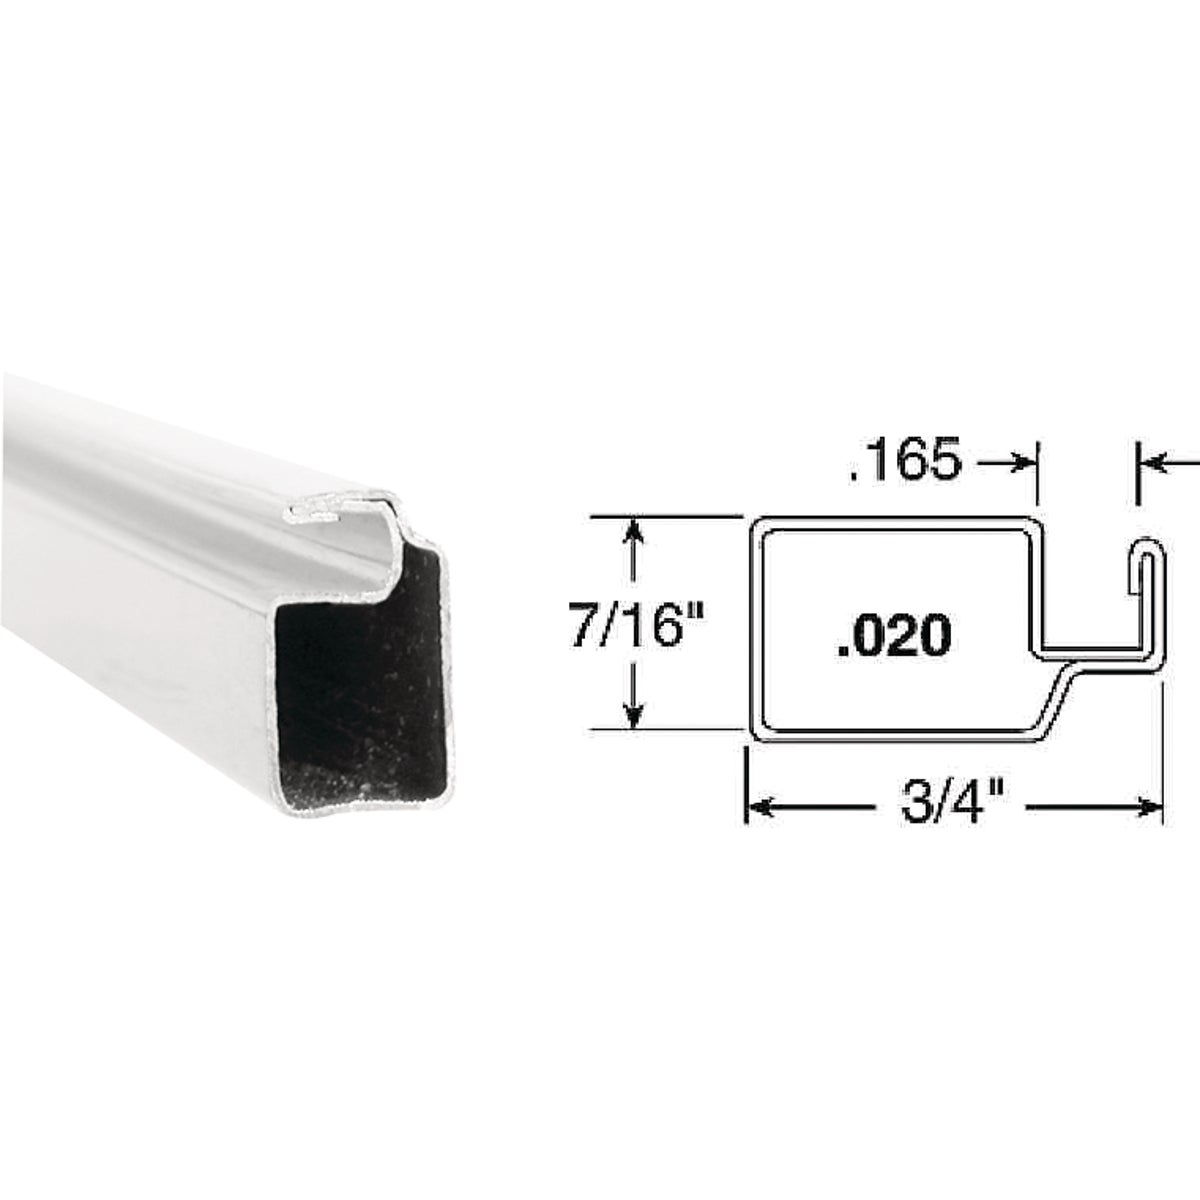 3/4X7/16X94WHT SCN FRAME - PL14042 by Prime Line Products